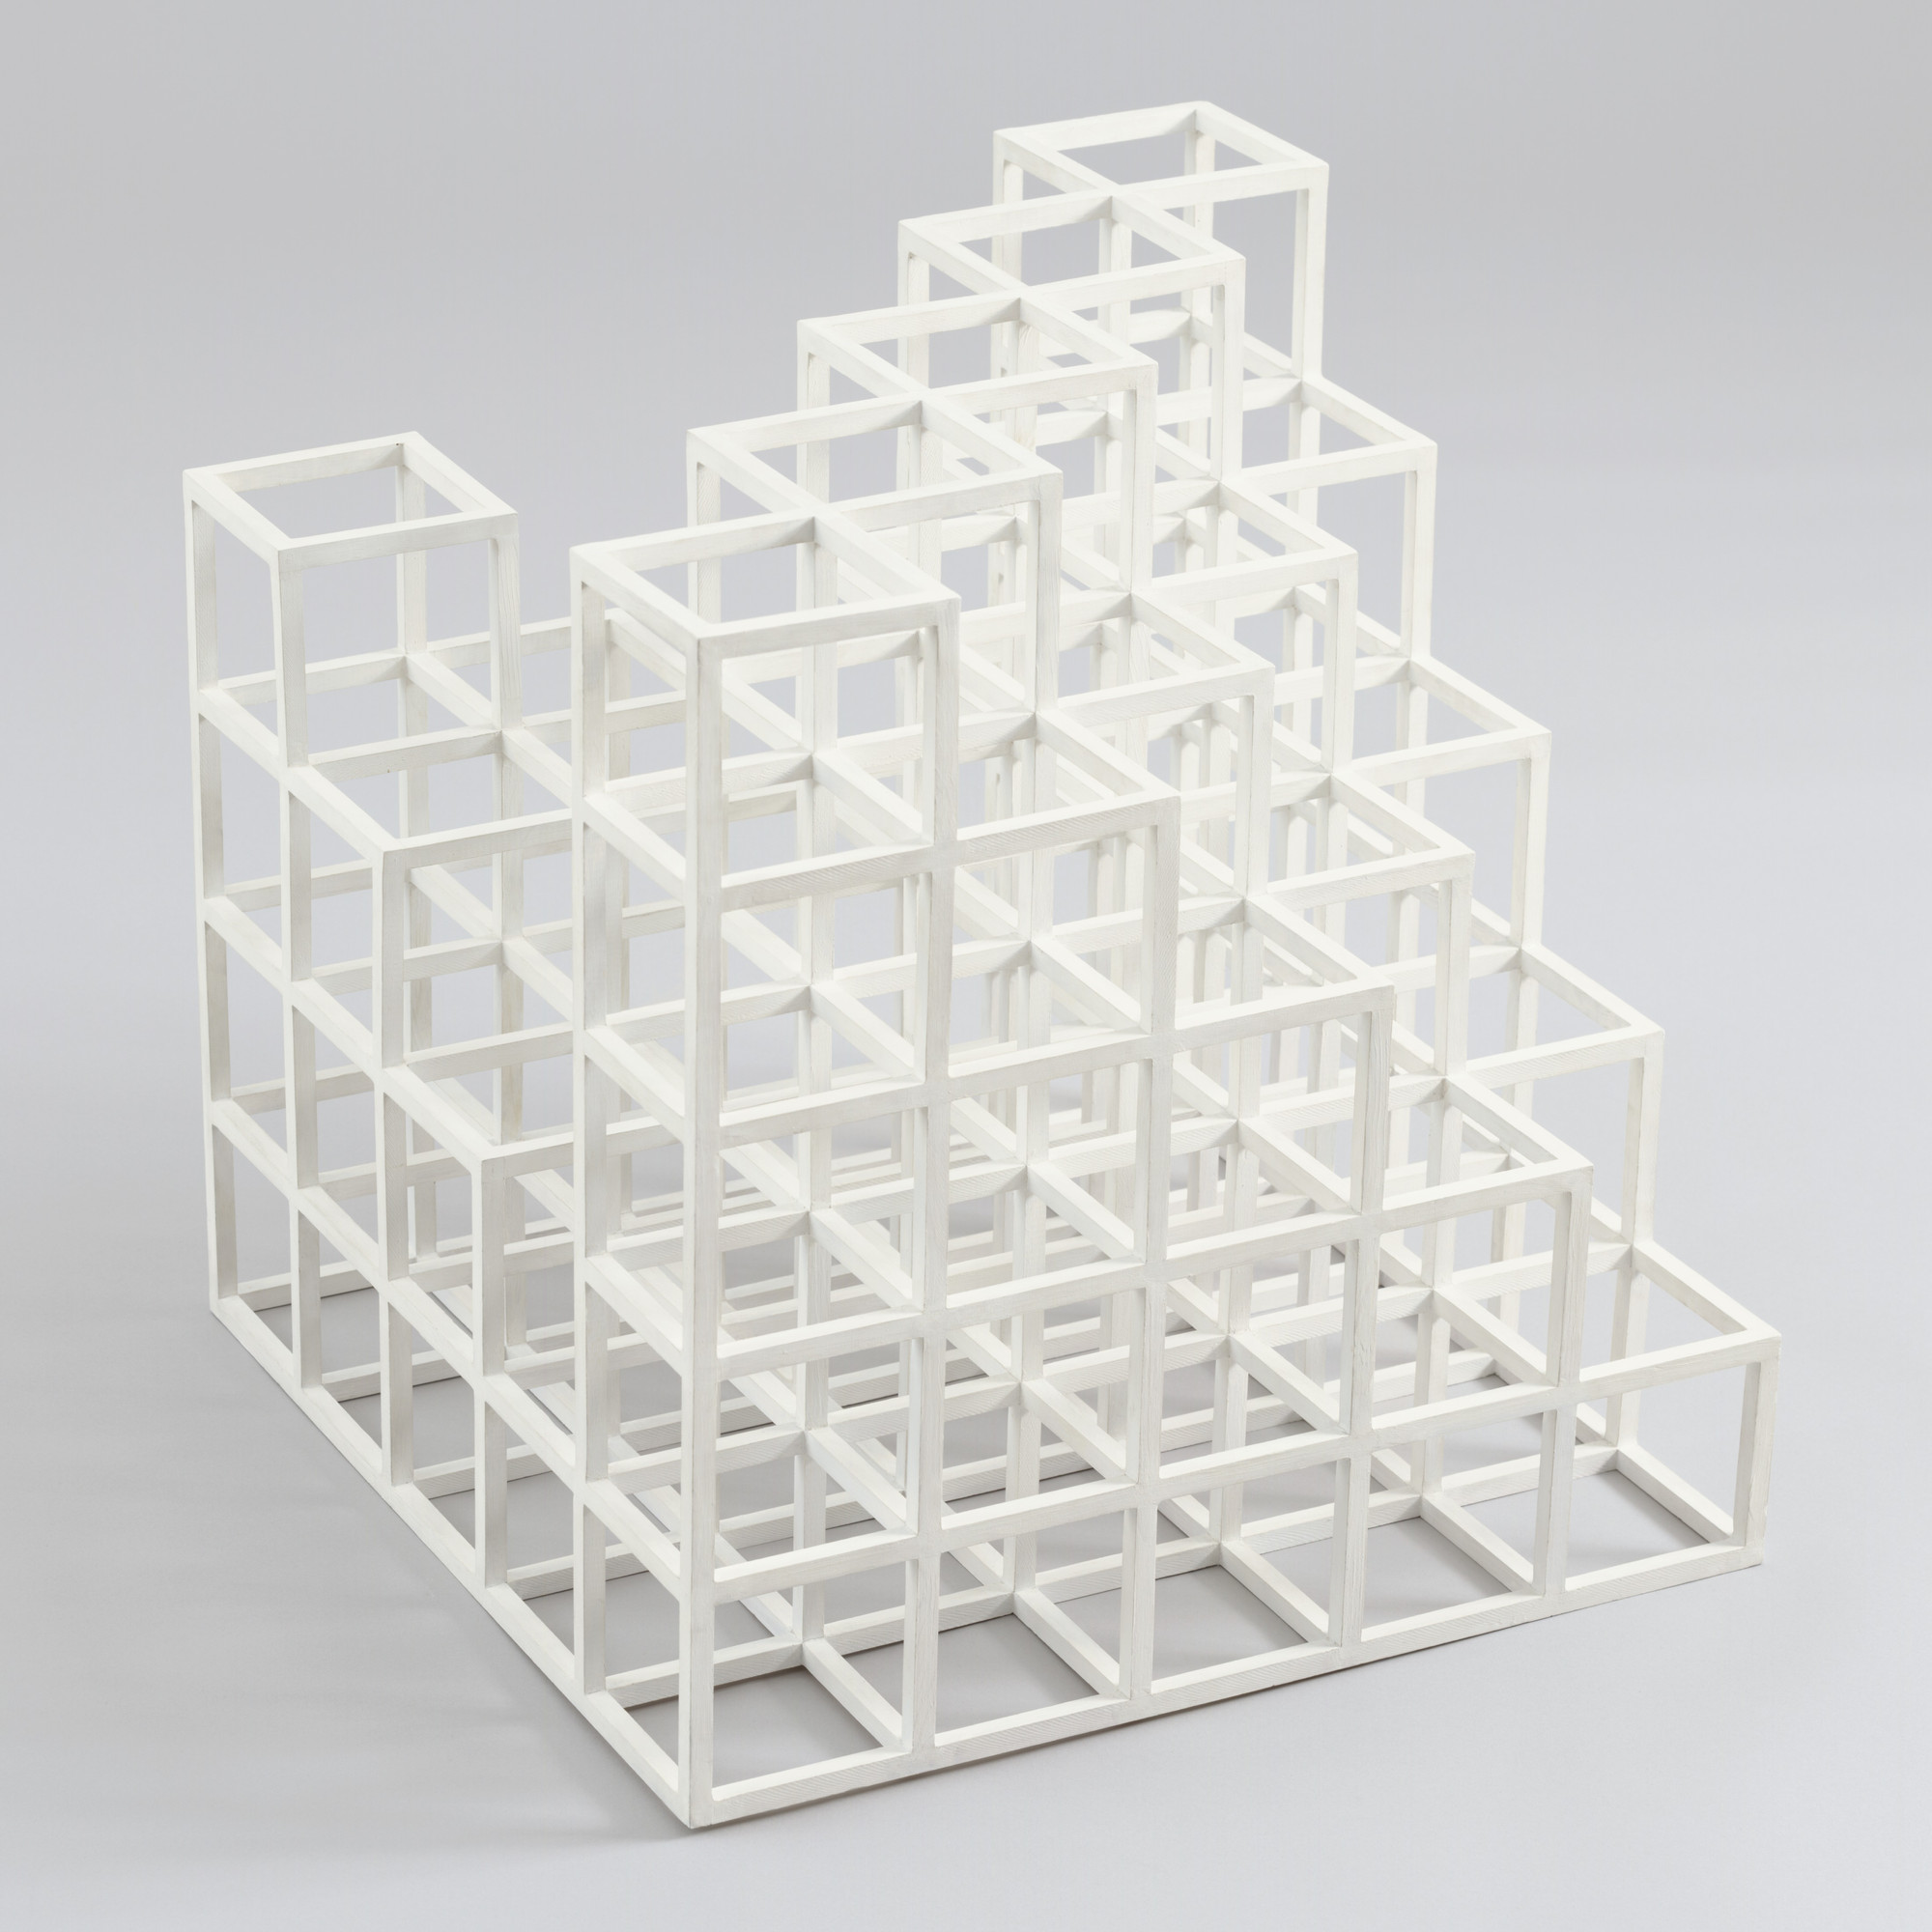 Sol LeWitt. Cubic Construction: Diagonal 4, Opposite Corners 1 and 4 Units. 1971